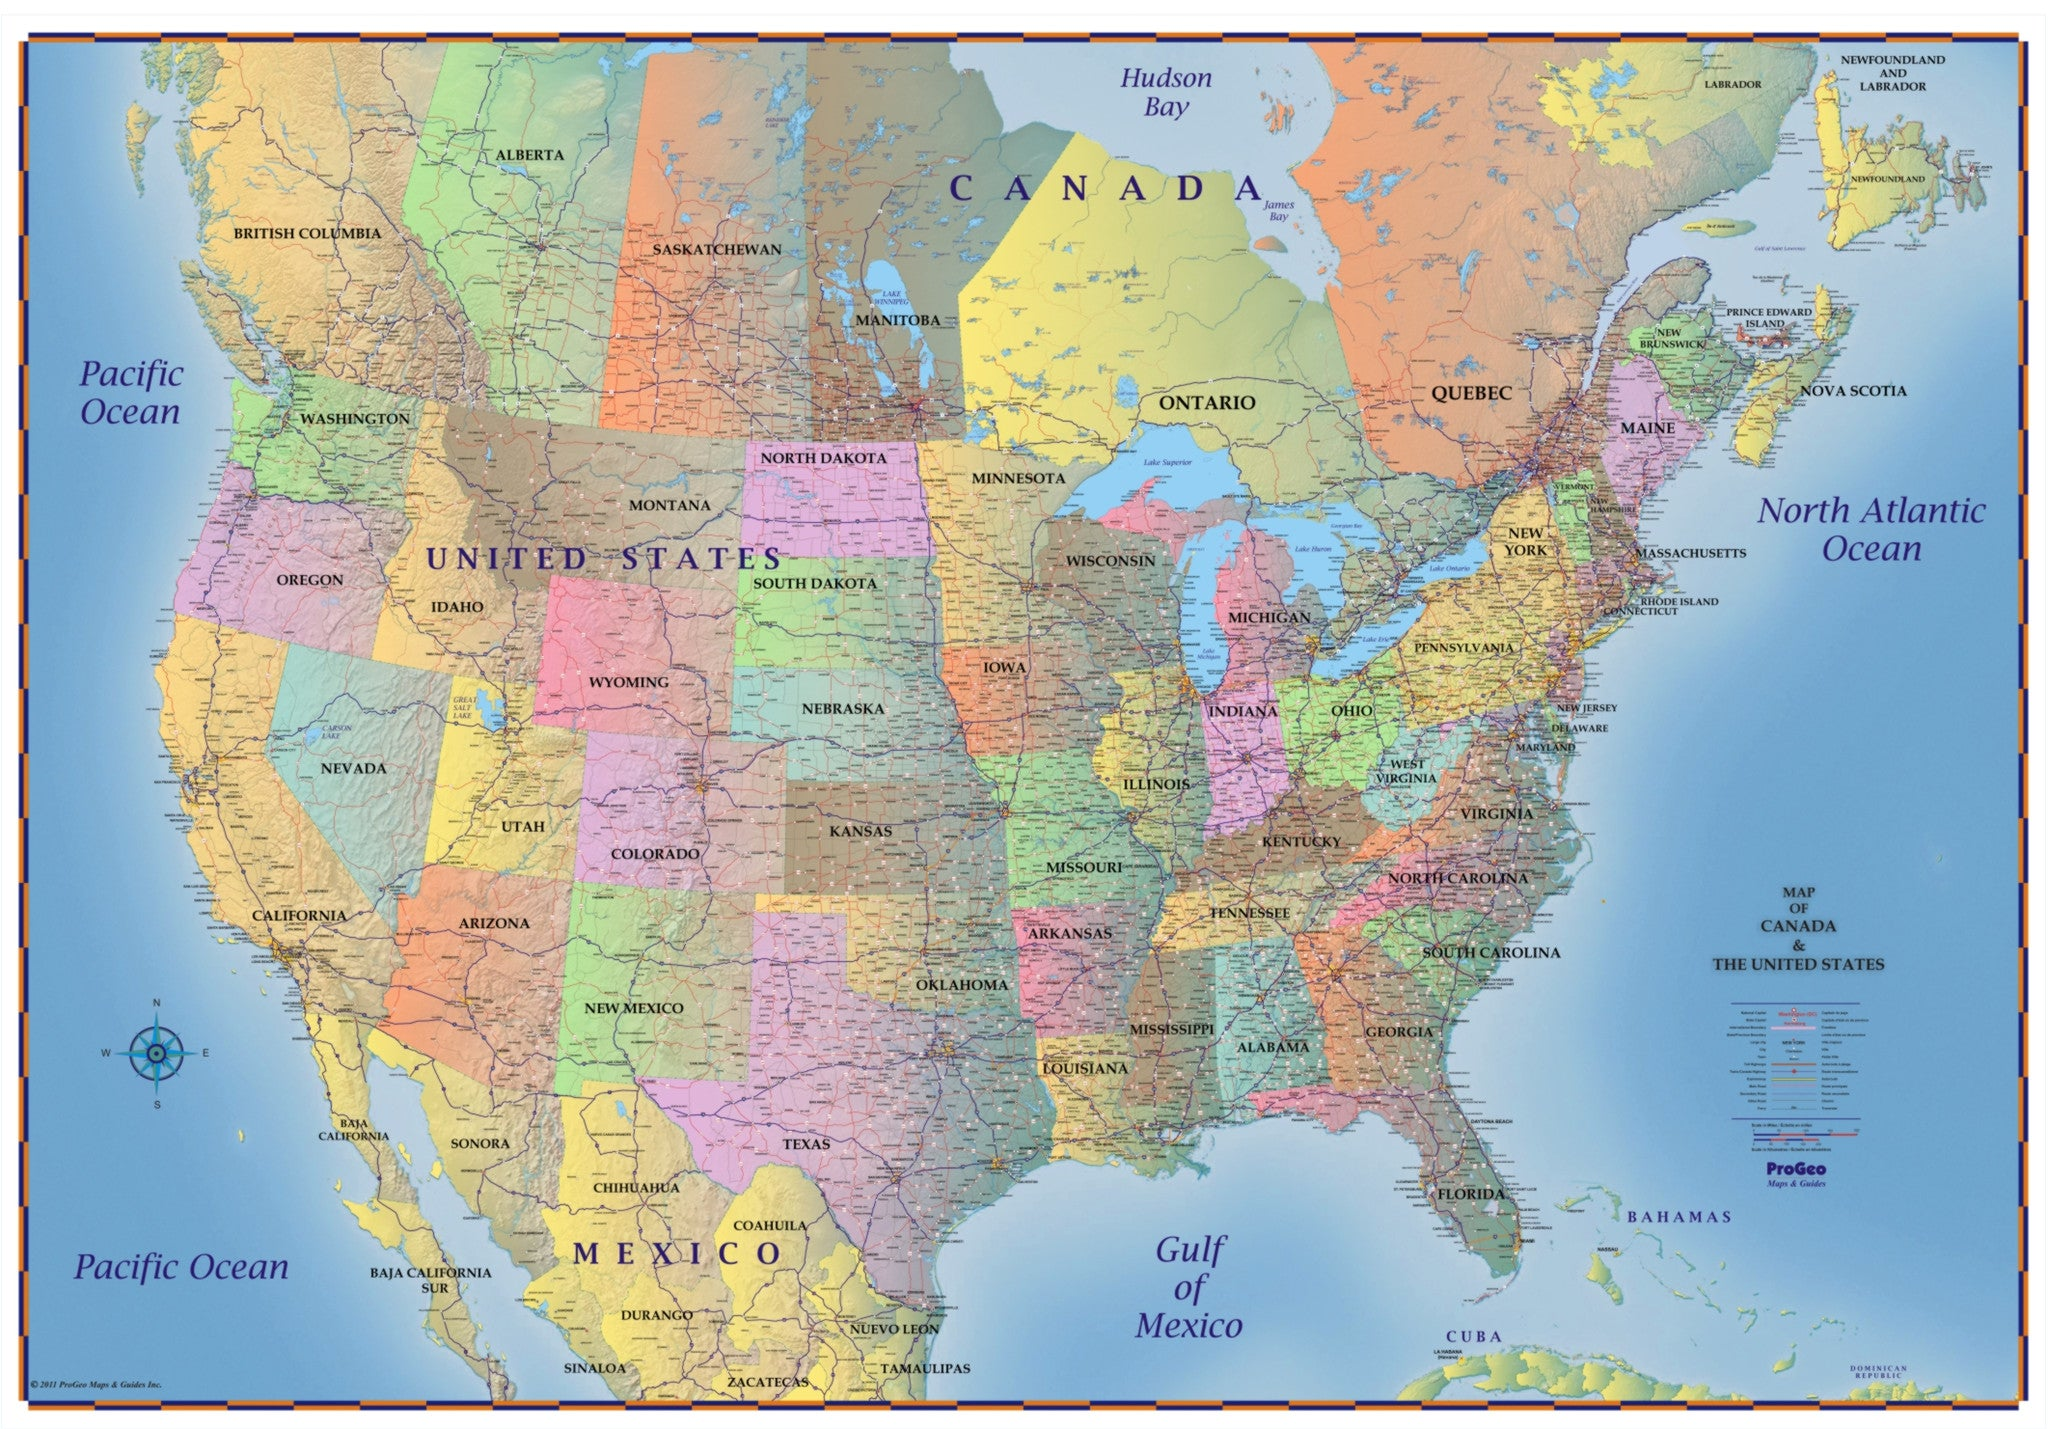 Map Of The United States And Canada World Map - Map usa canada